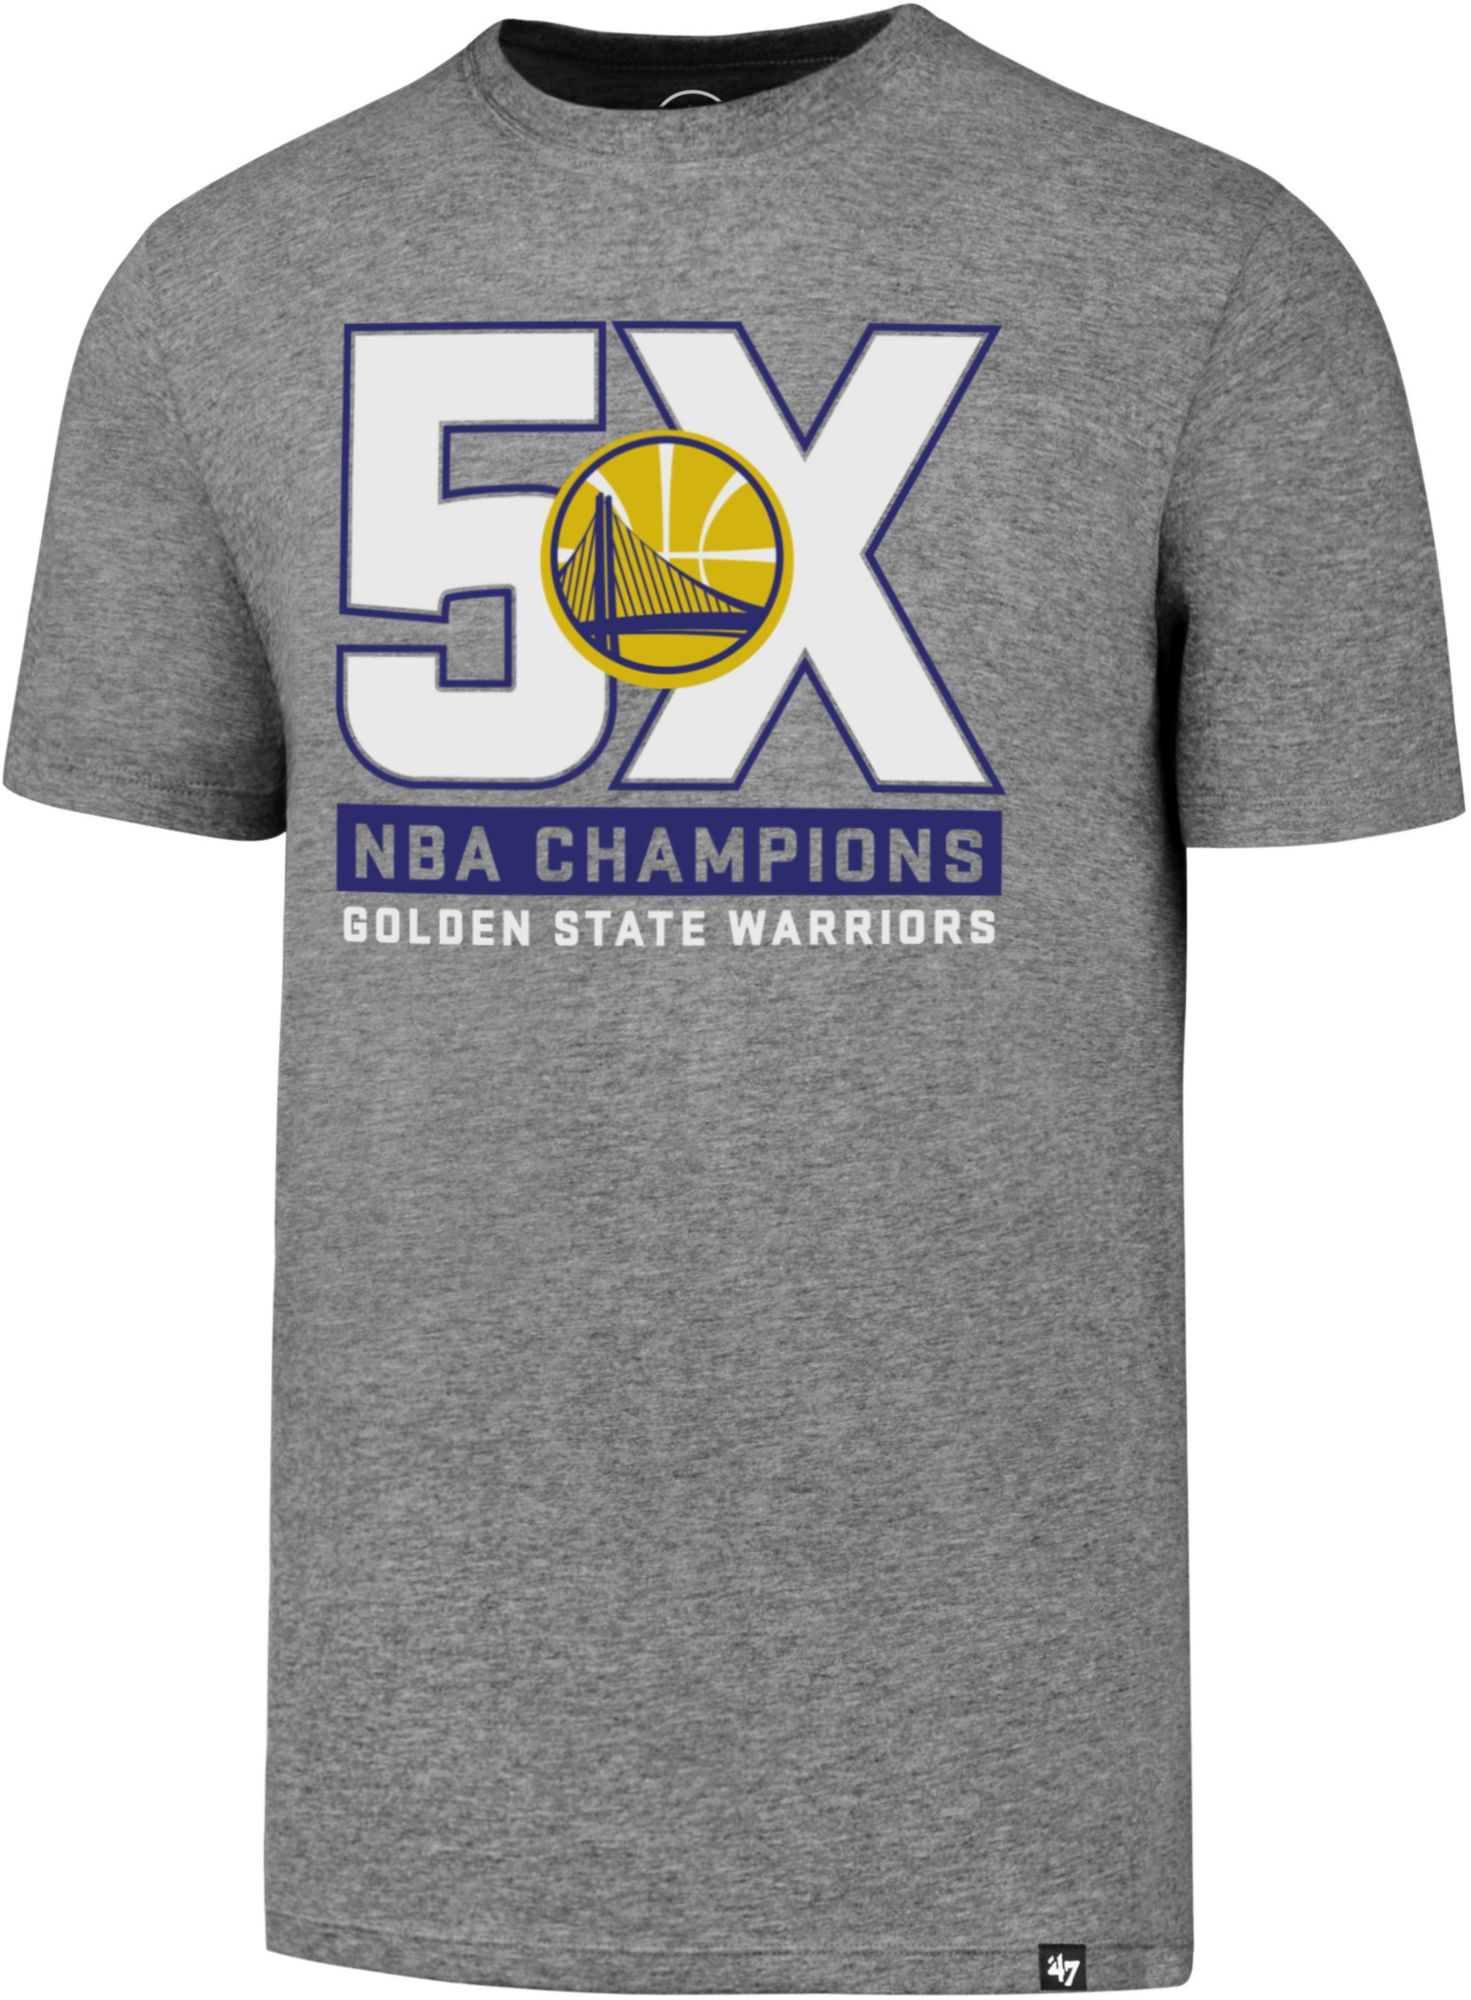 0818d486 ... golden state warriors nike dry womens nba t shirt. nike noimagefound